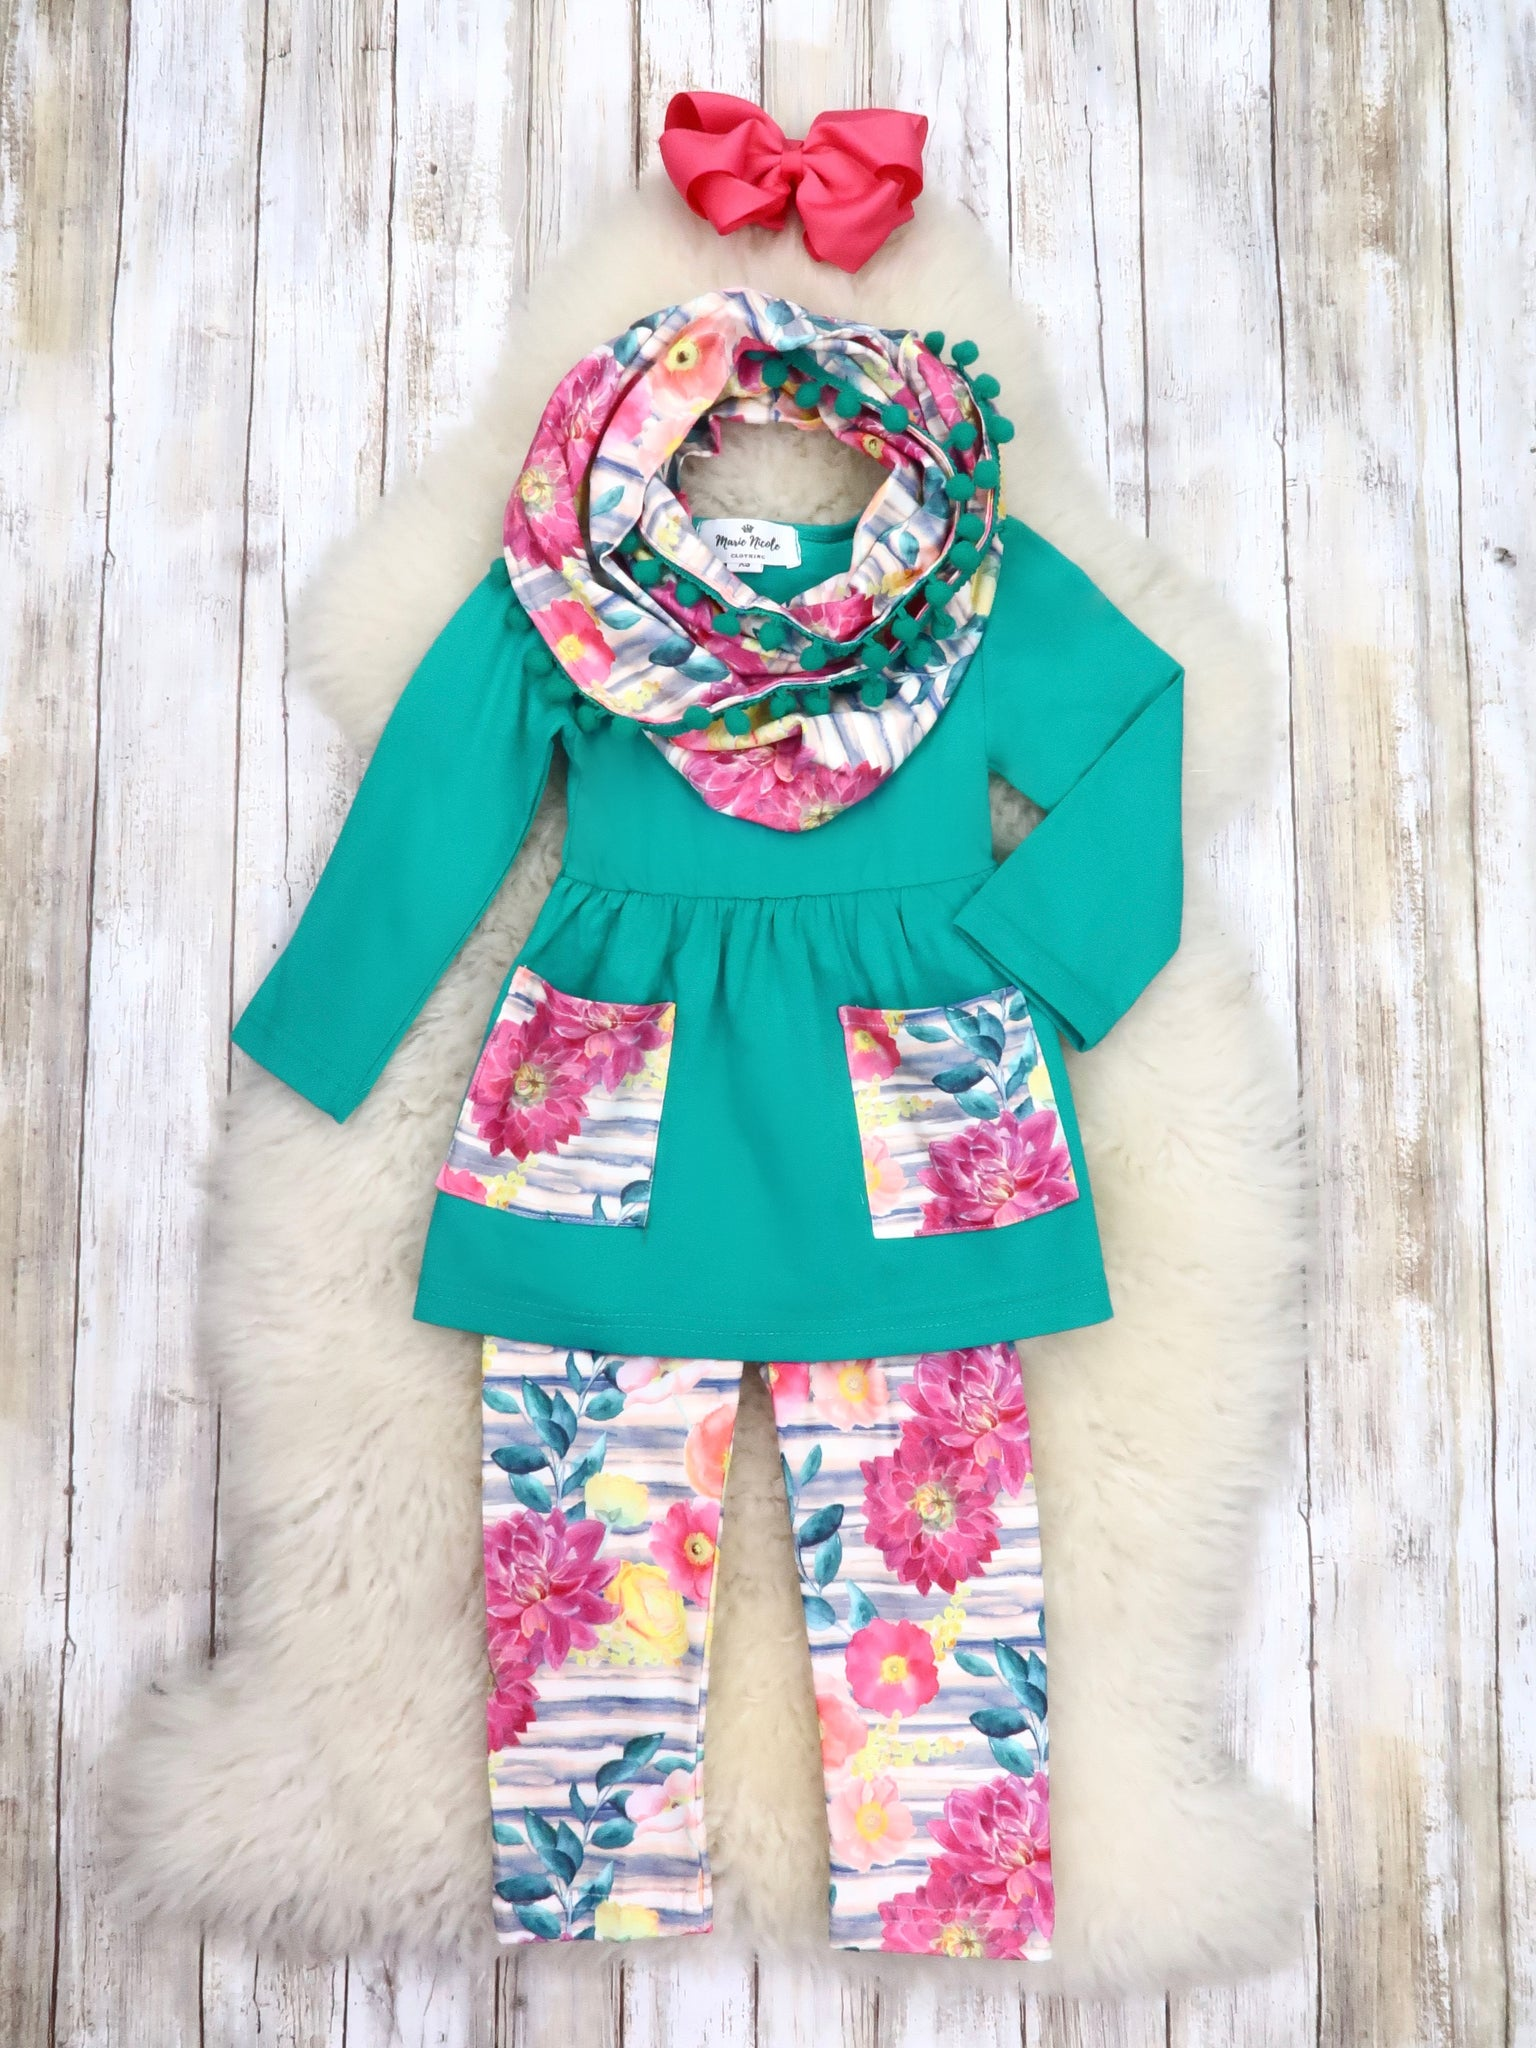 Teal Tunic, Pink Floral Pants, & Scarf Outfit